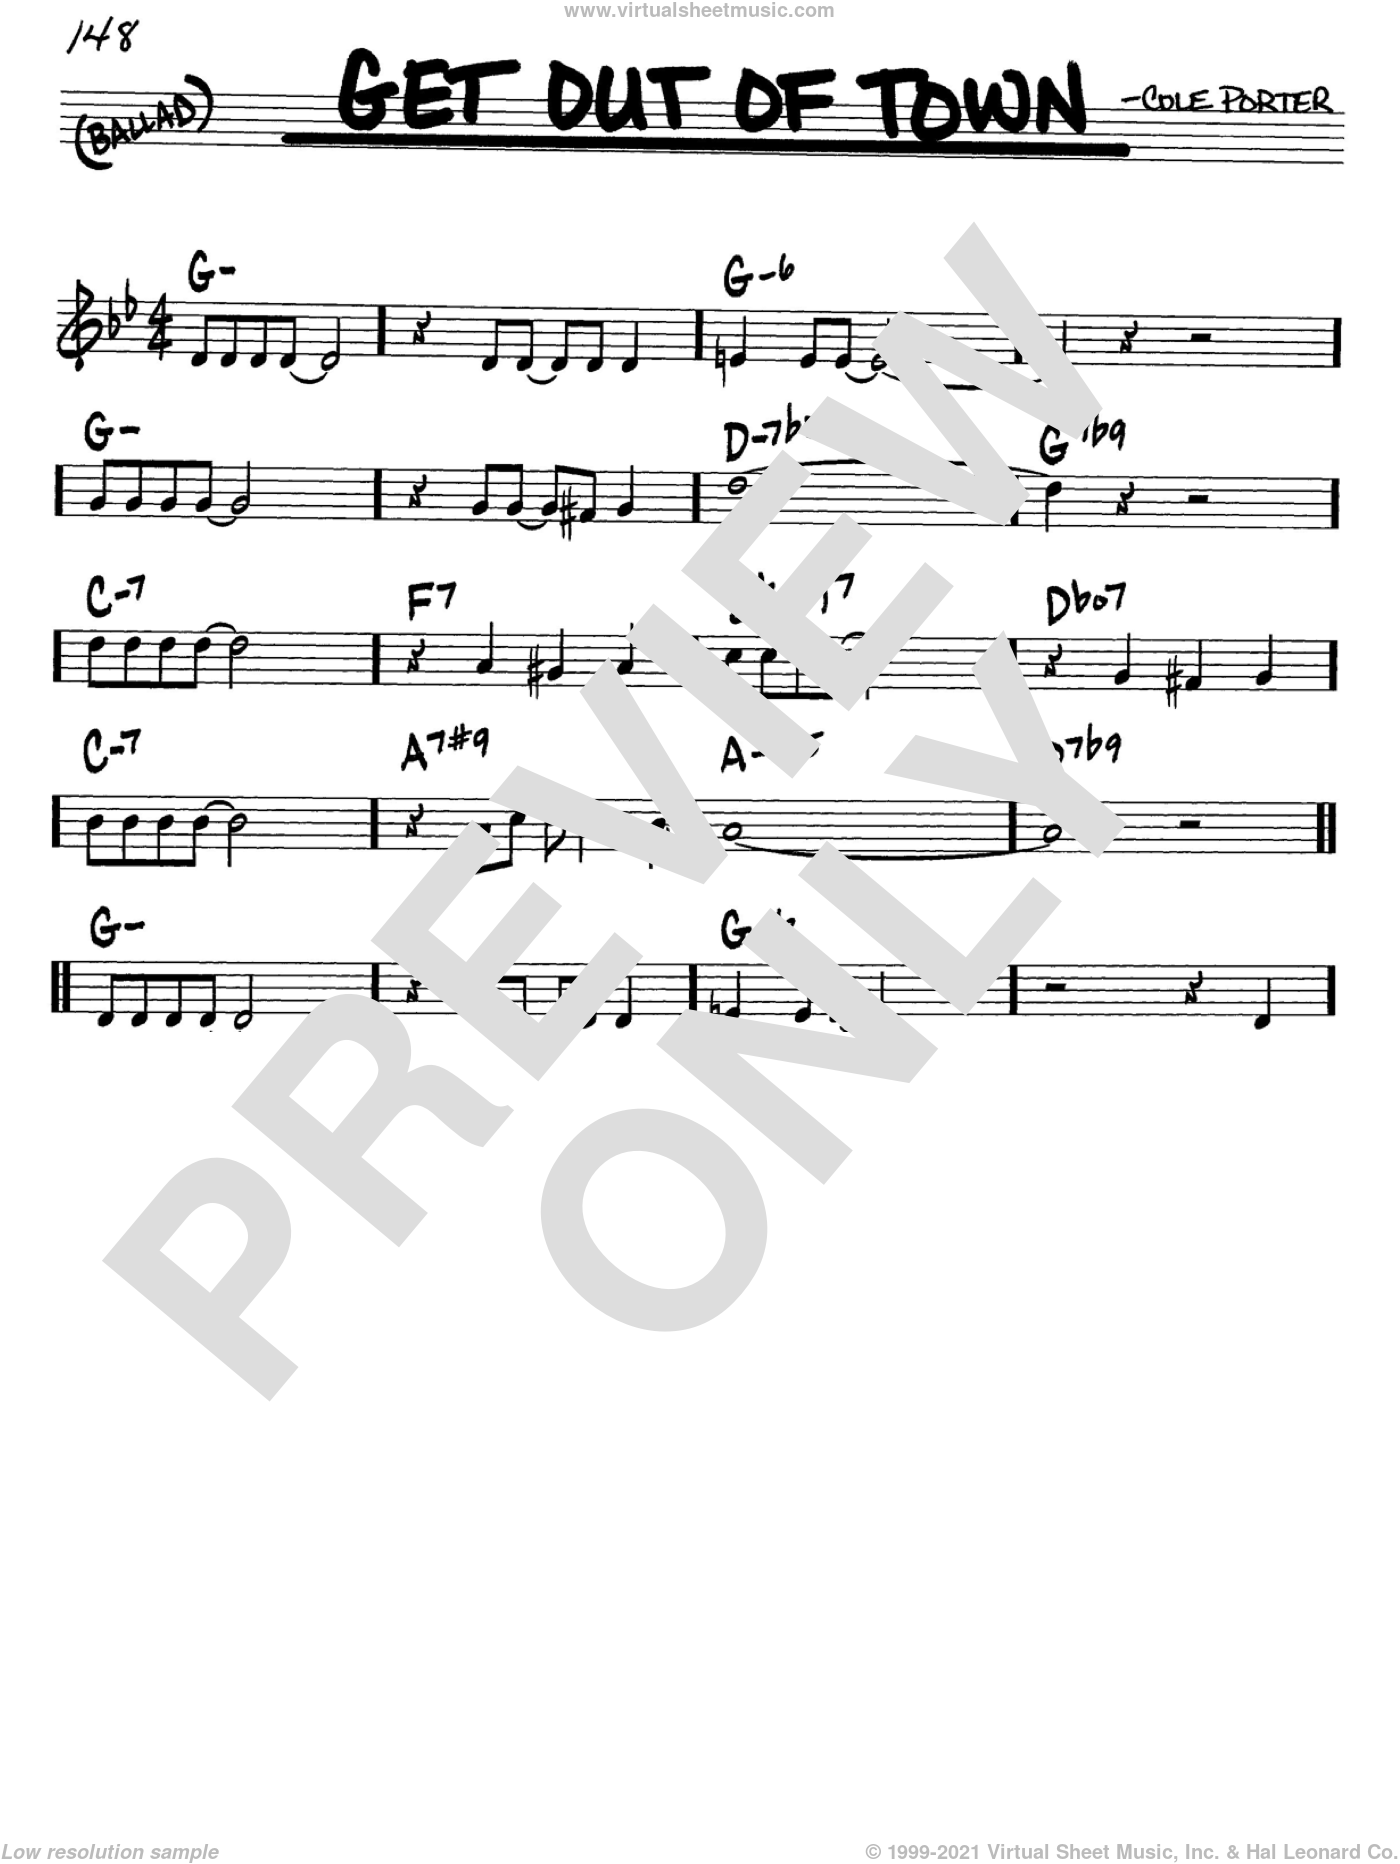 Get Out Of Town sheet music for voice and other instruments (C) by Cole Porter. Score Image Preview.